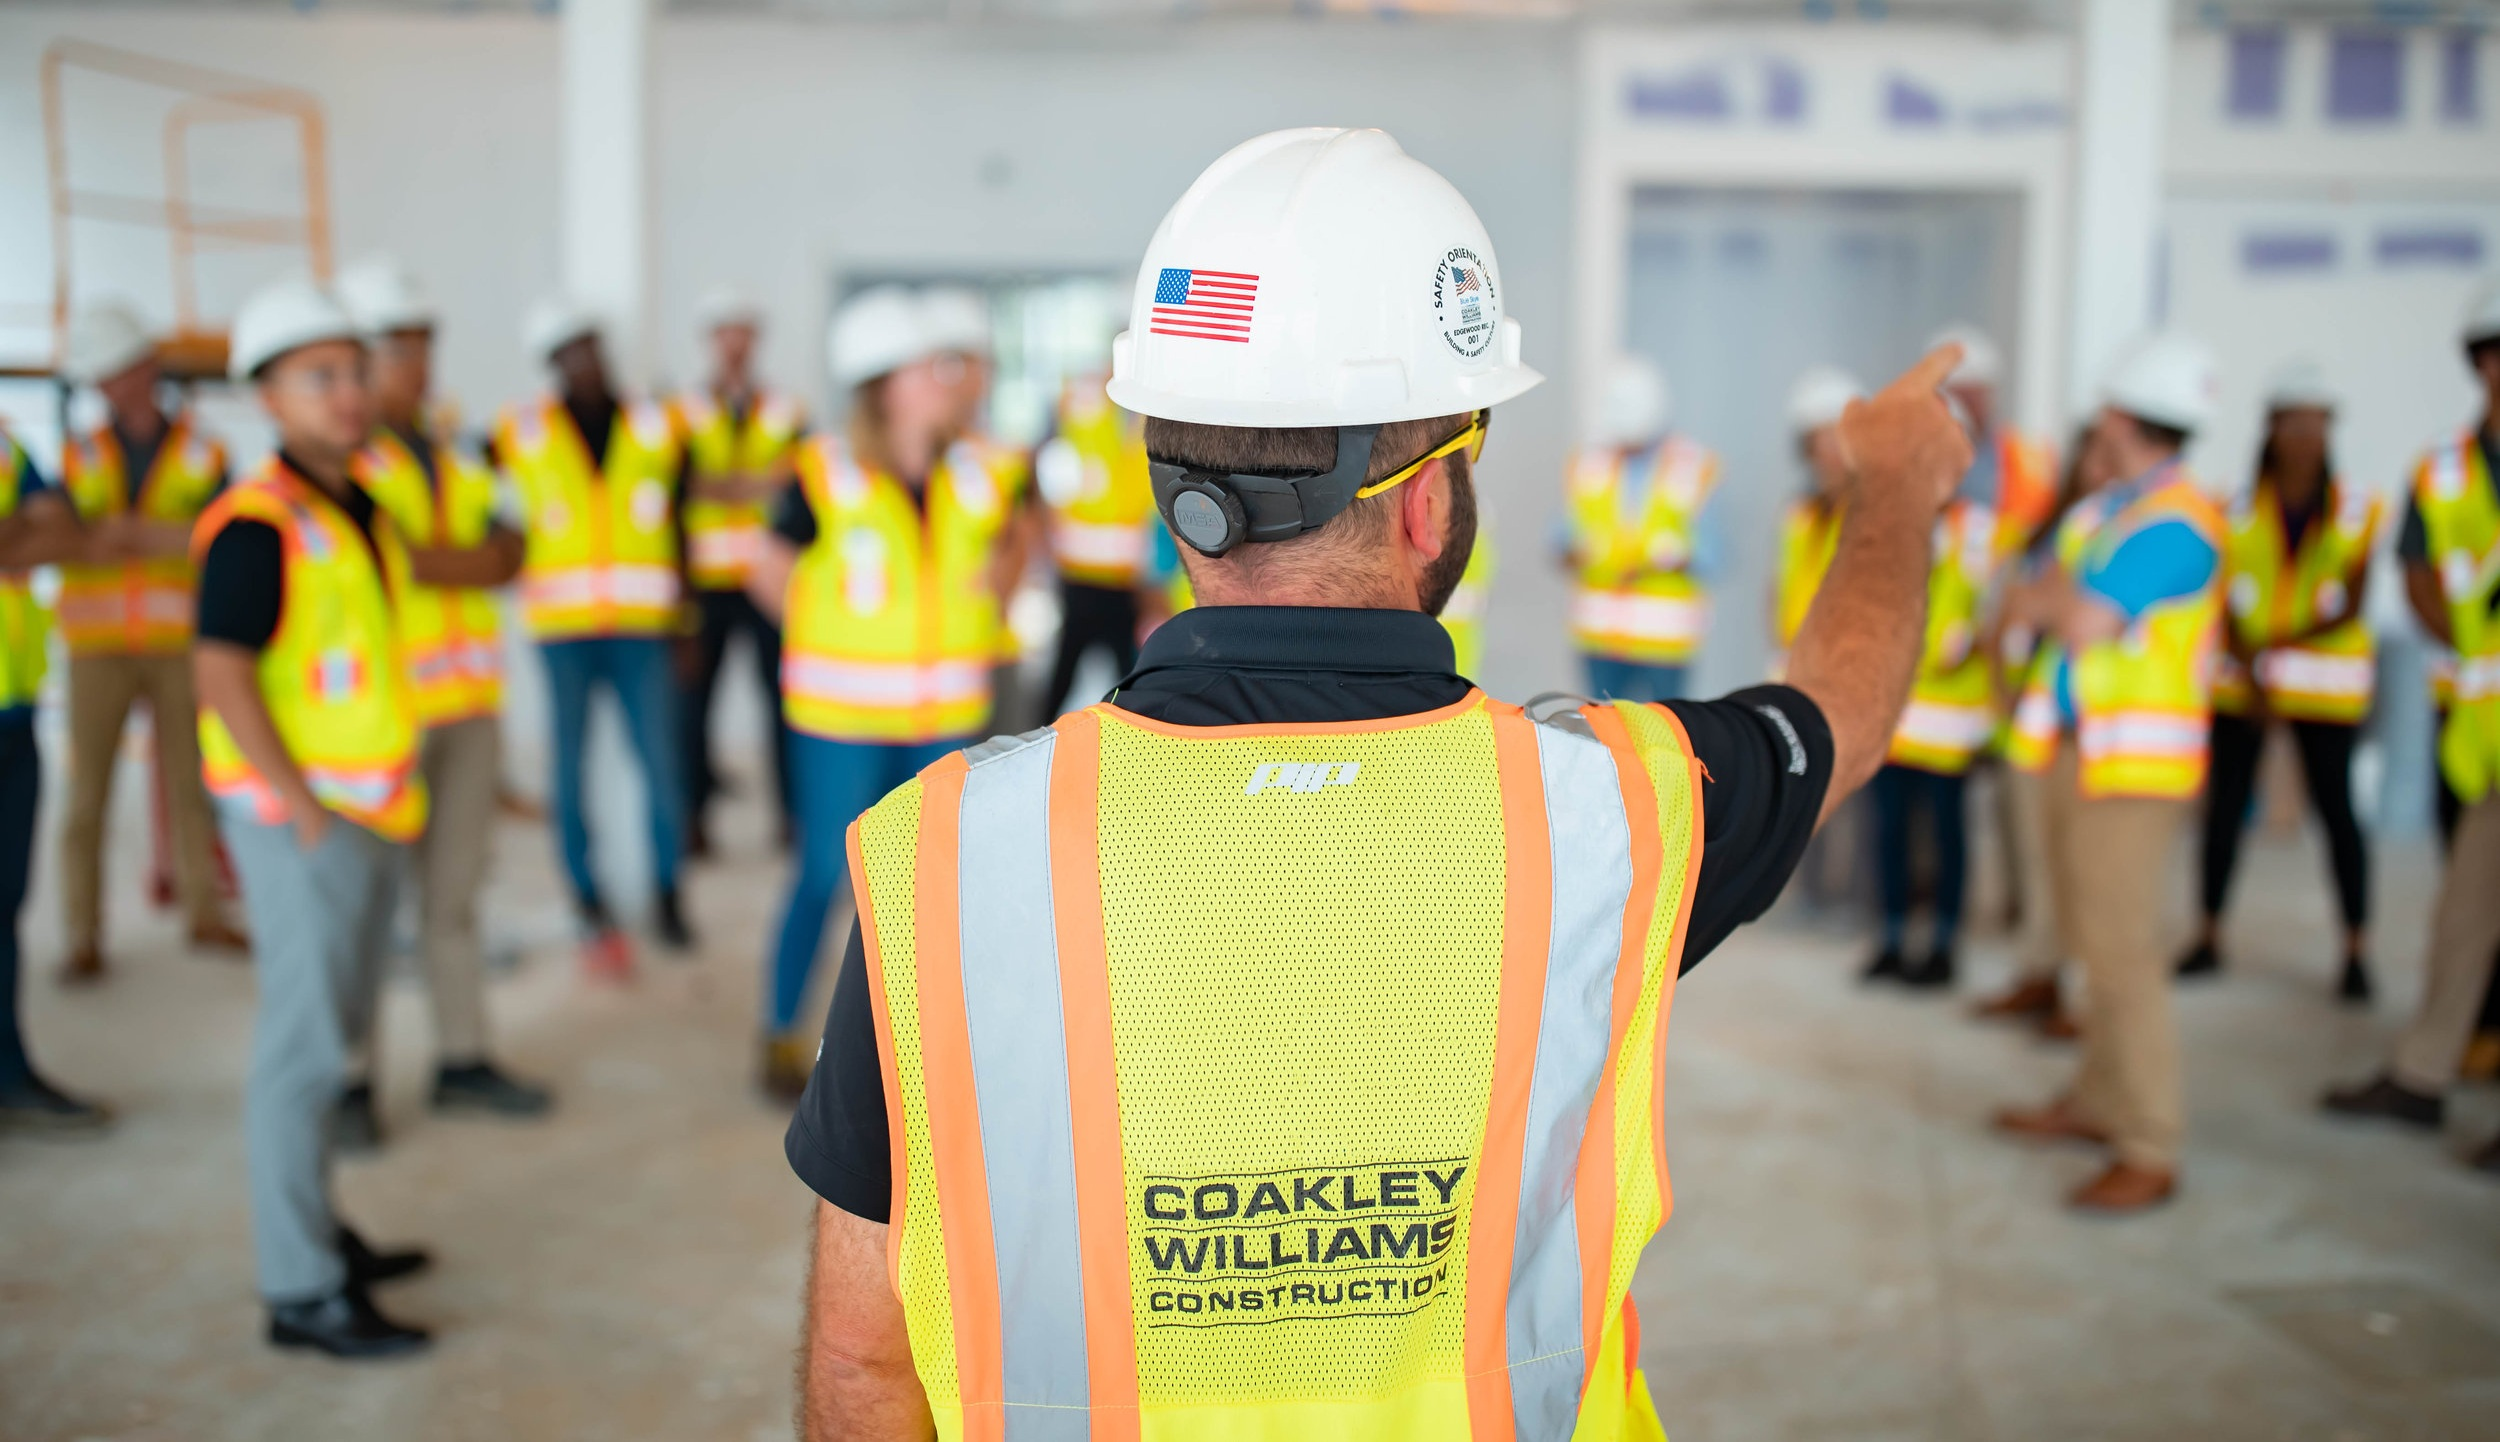 Coakley & Williams Construction - Coakley & Williams Construction is a full service design builder and general contractor headquartered in Bethesda, Maryland. We operate in the hospitality, life sciences, education, athletics, multi-family, office, commercial interiors, and governmental sectors.We are proud that much of our business comes from repeat clients, as client satisfaction is a top priority. Our reputation has been preserved by controlling growth, retaining top talent, and devoting top management attention to our clients' needs. We partner with owners, architects, and subcontractors, and we treat all stakeholders with integrity and honesty.